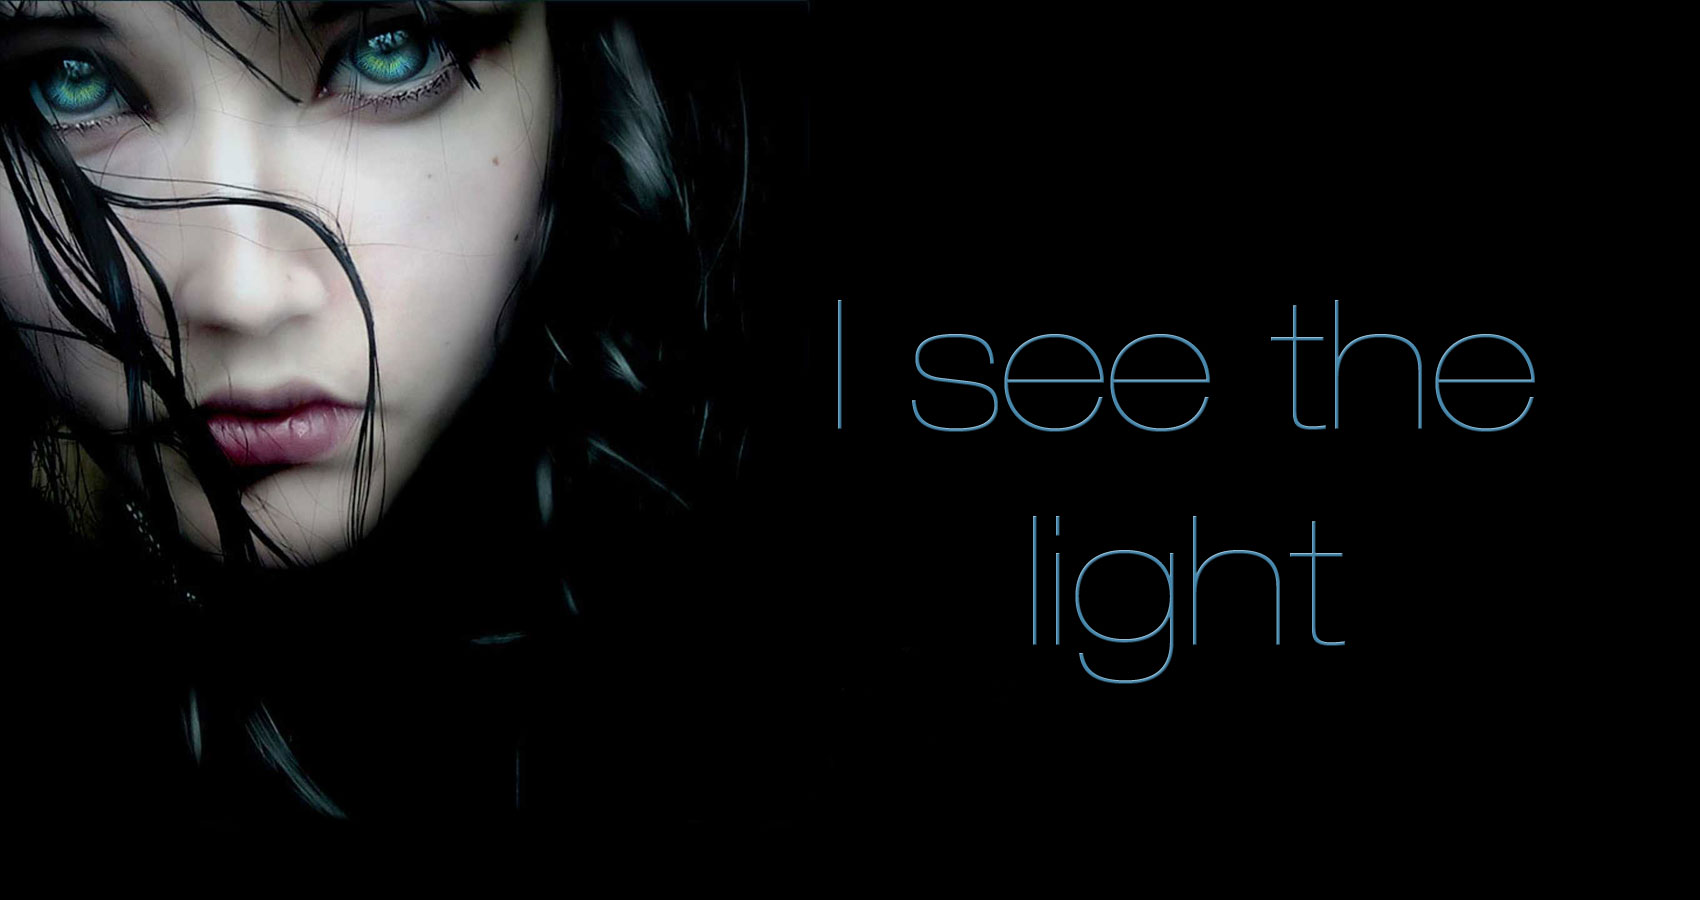 I see the light by Jasmin Mödlhammer at Spillwords.com